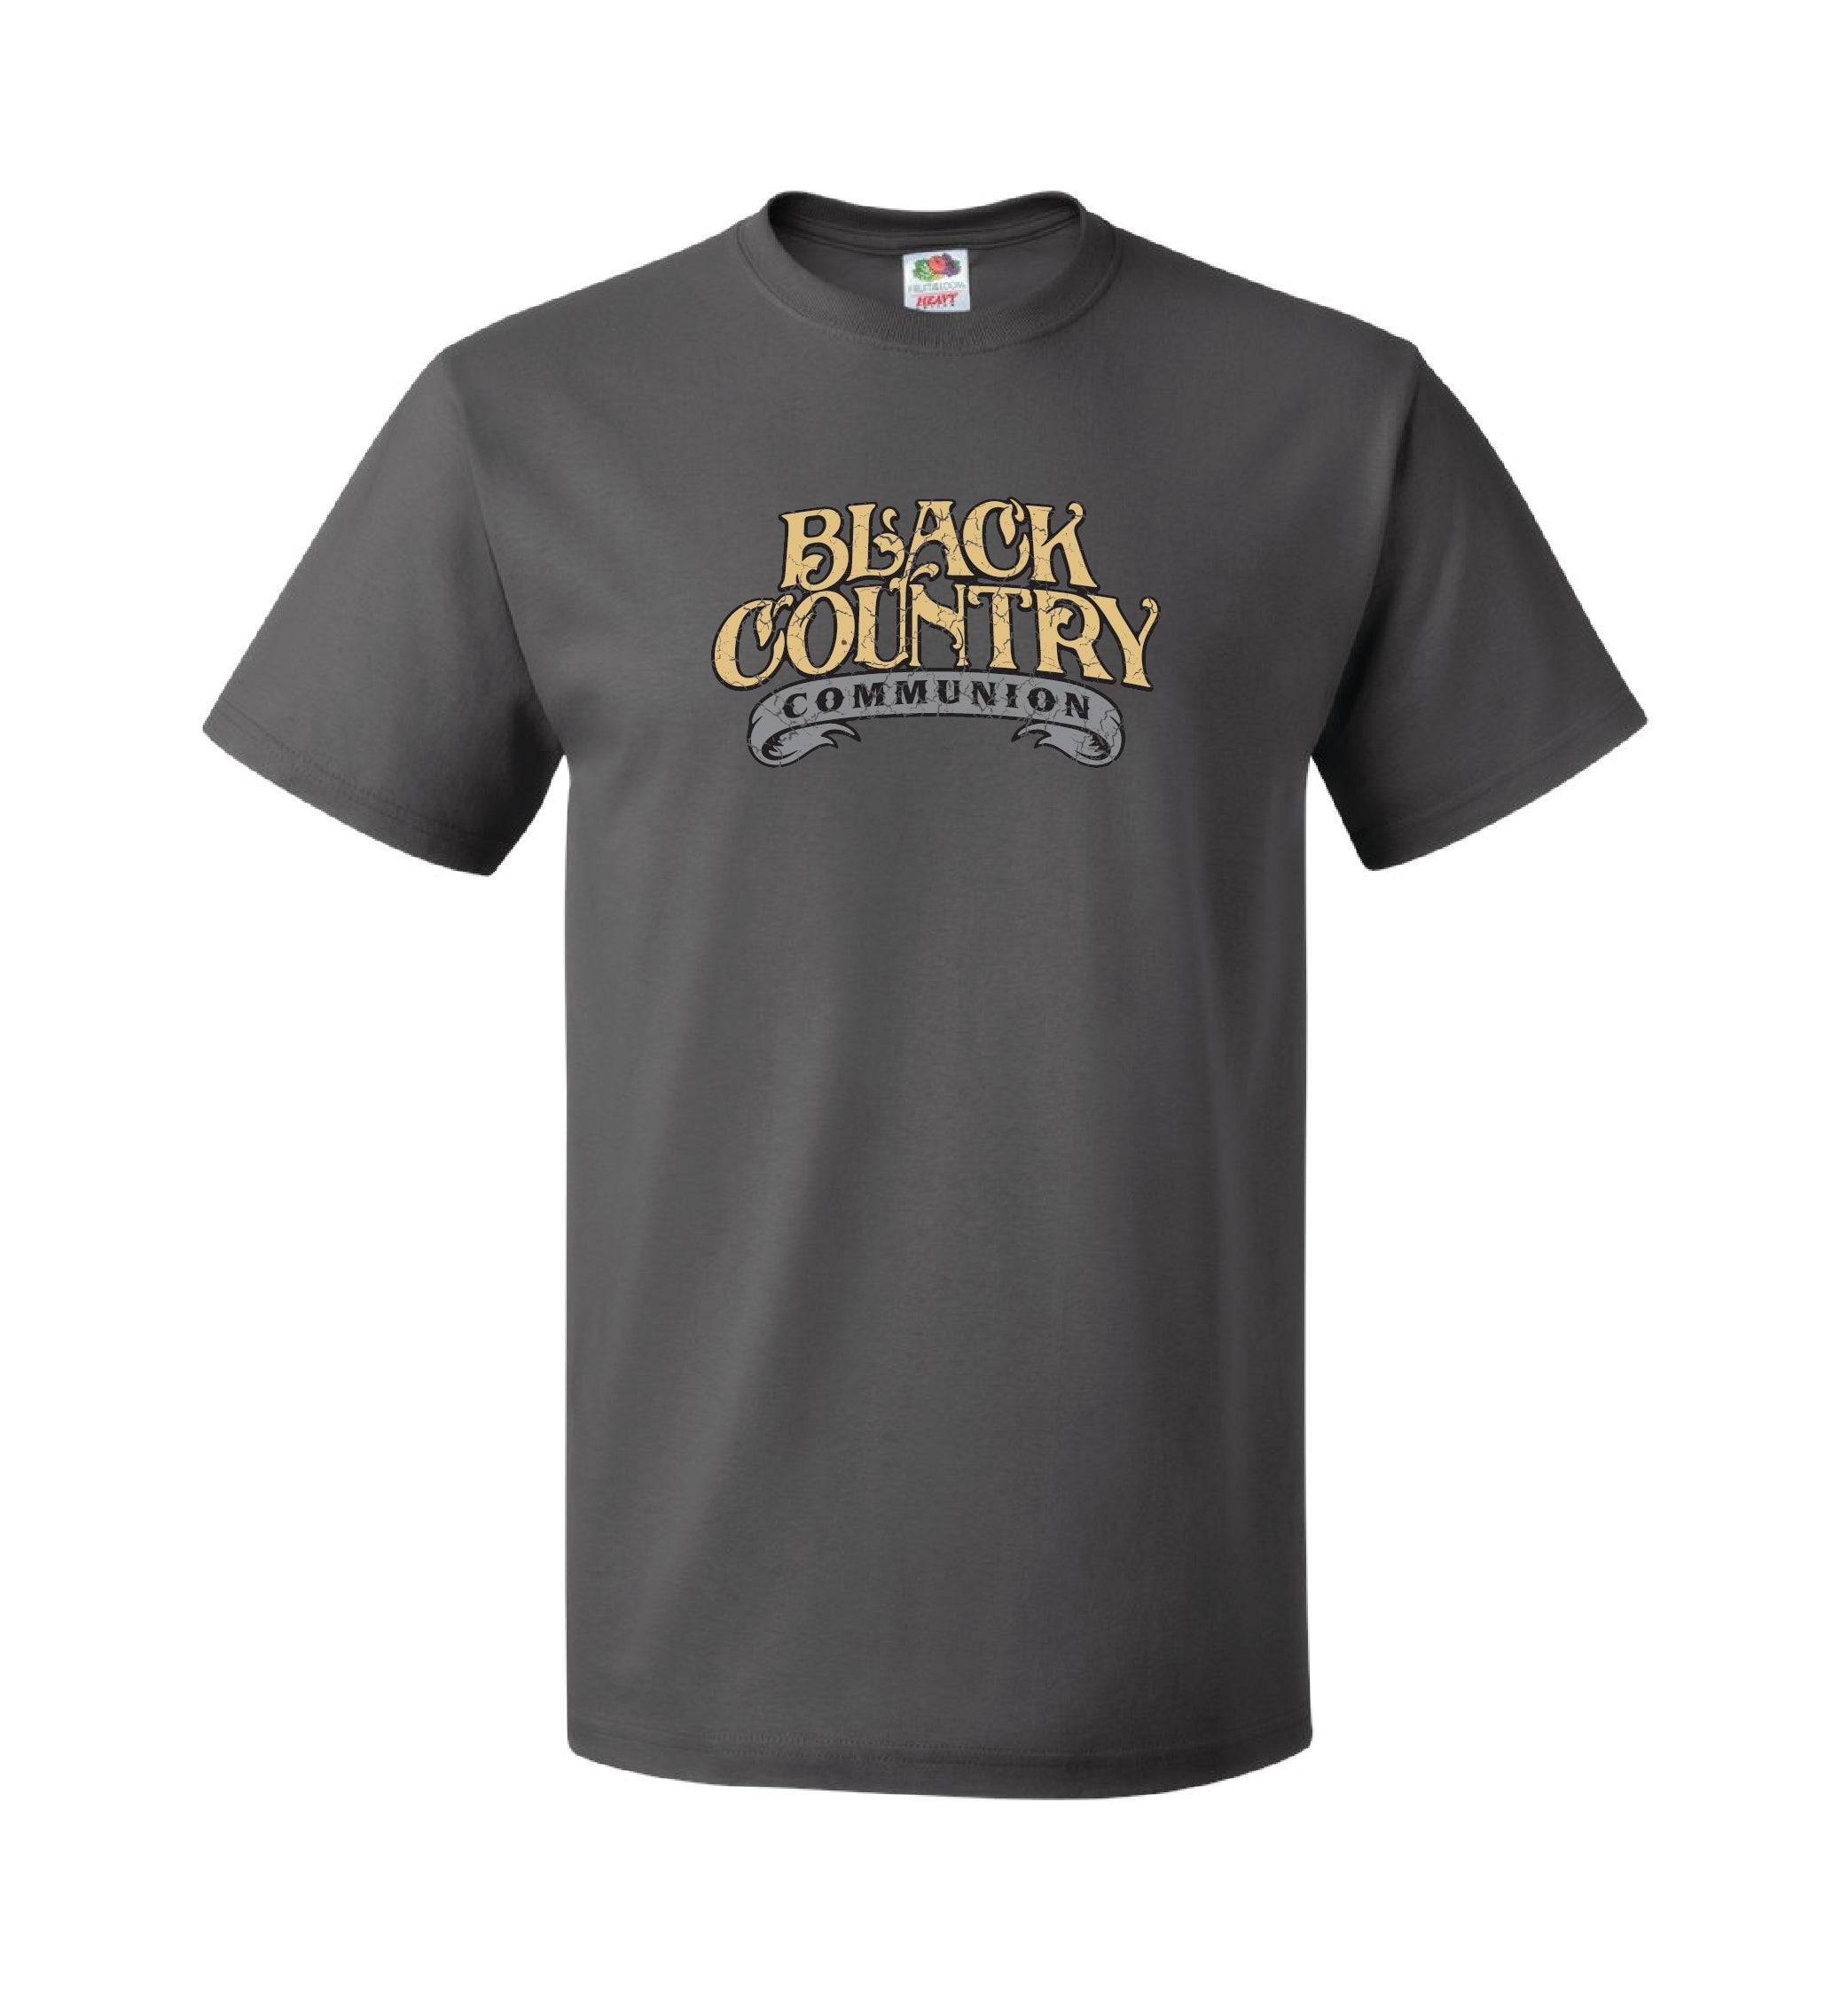 Black Country Communion Initial T-shirt (Unisex)